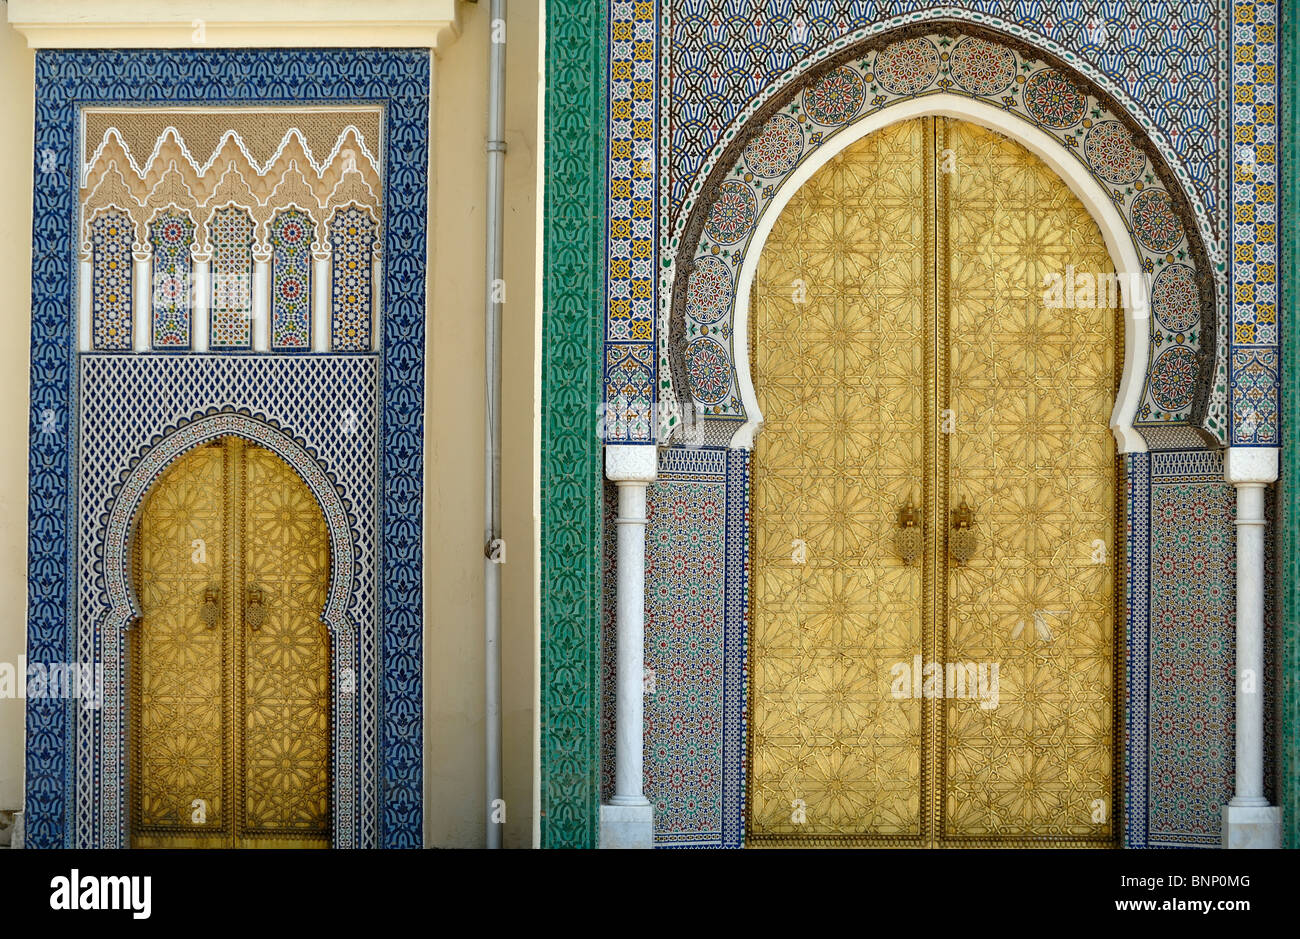 ... Gold or Golden Gate Arabic or Oriental Doors of the Royal Palace in Fez & Fez Morocco. Royal Palace Doors Dar El Makhsen Stock Photo ...